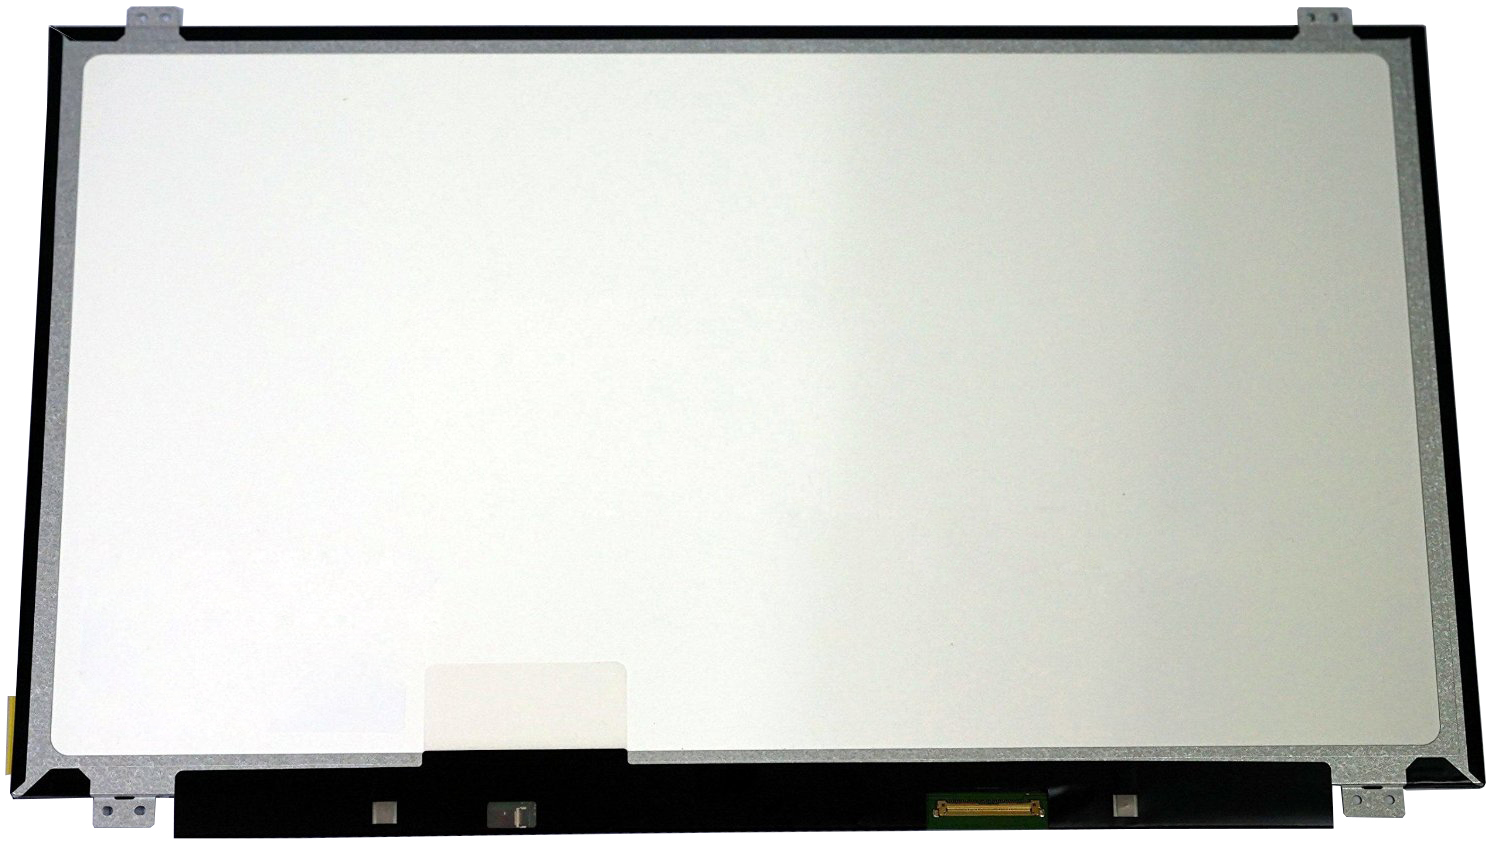 QuYing Laptop LCD Screen for Acer Aspire V5-573PG V5-561 V5-561G V3-572 V3-572G VN7-591G ES1-520 Series(15.6 1366x768 30pin) 14 touch glass screen digitizer lcd panel display assembly panel for acer aspire v5 471 v5 471p v5 471pg v5 431p v5 431pg